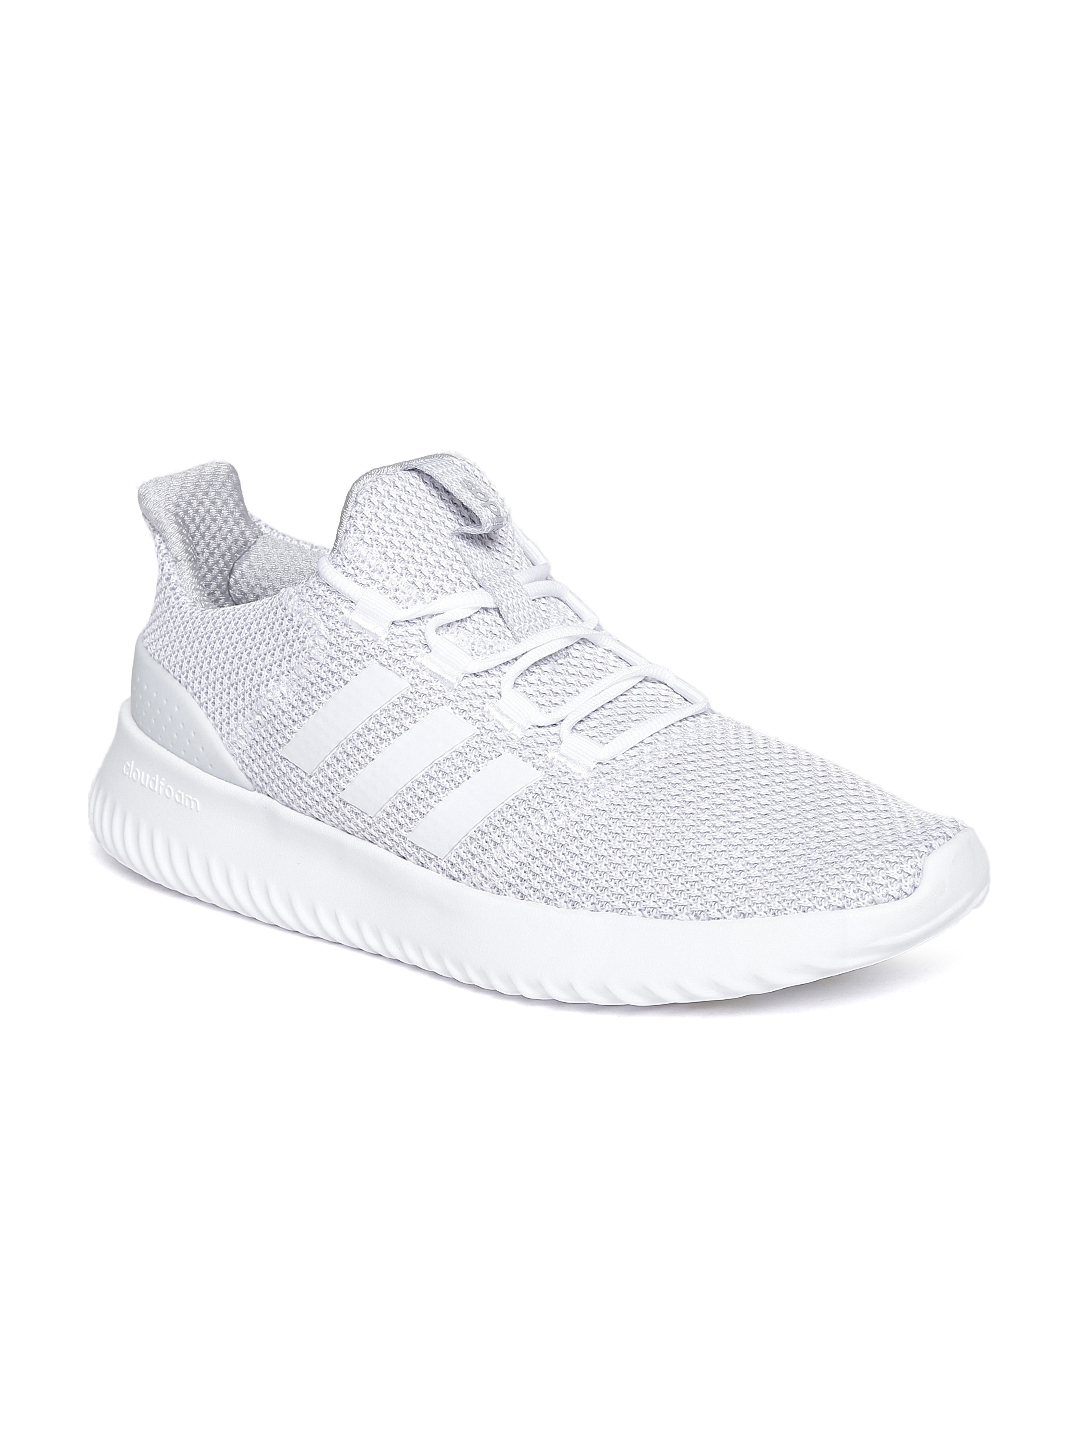 Buy ADIDAS NEO Men Grey CLOUDFOAM ULTIMATE Sneakers - Casual Shoes ... 8fe8d7801